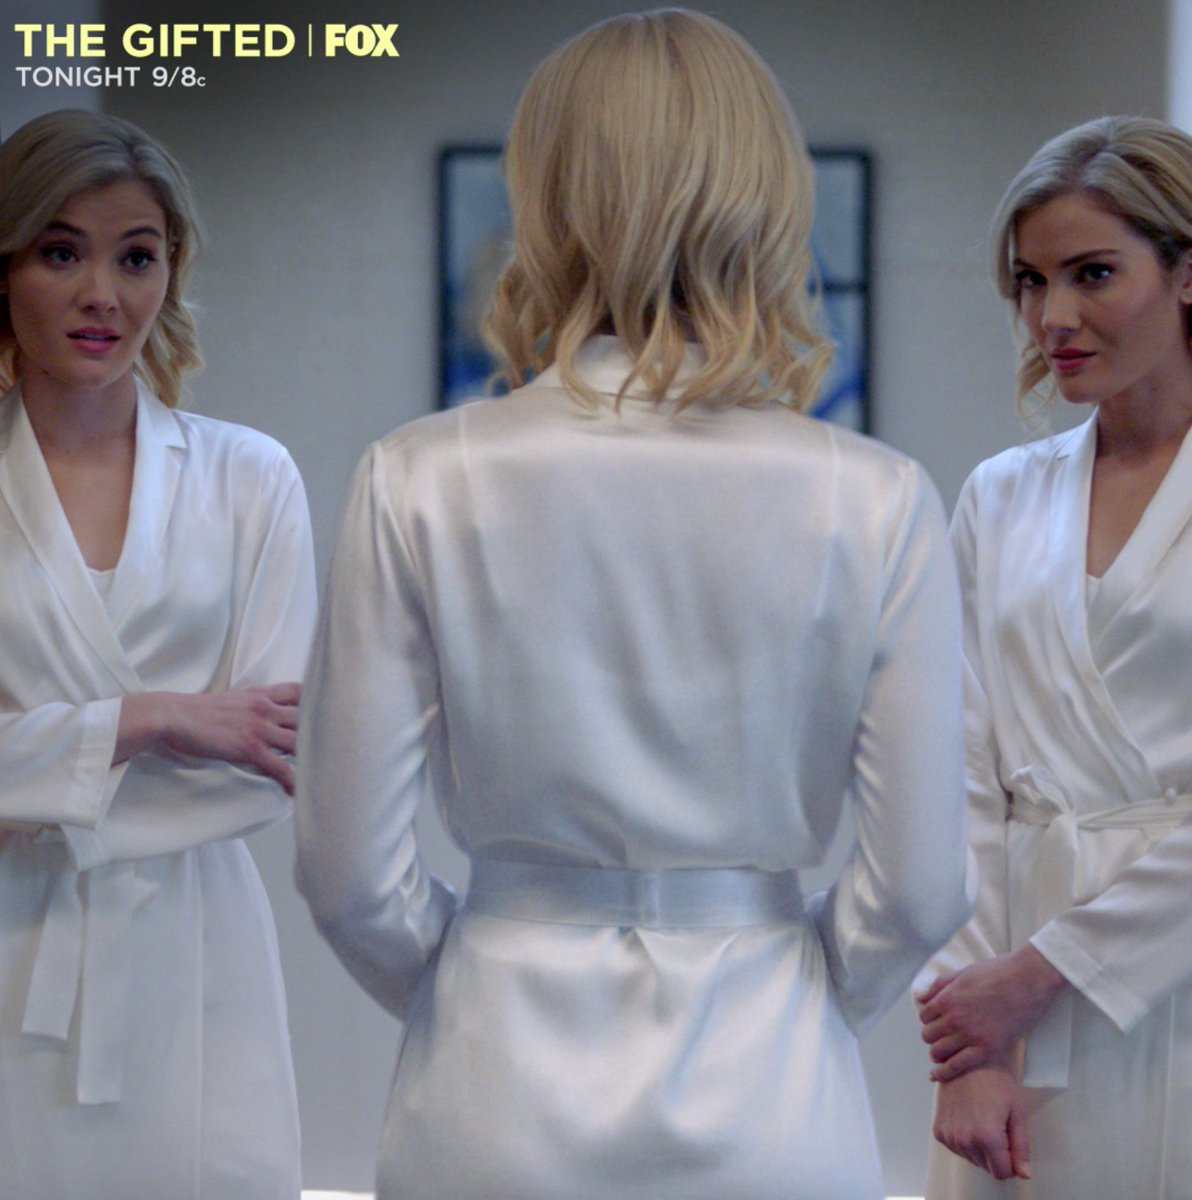 The Gifted's photo on #TheGifted